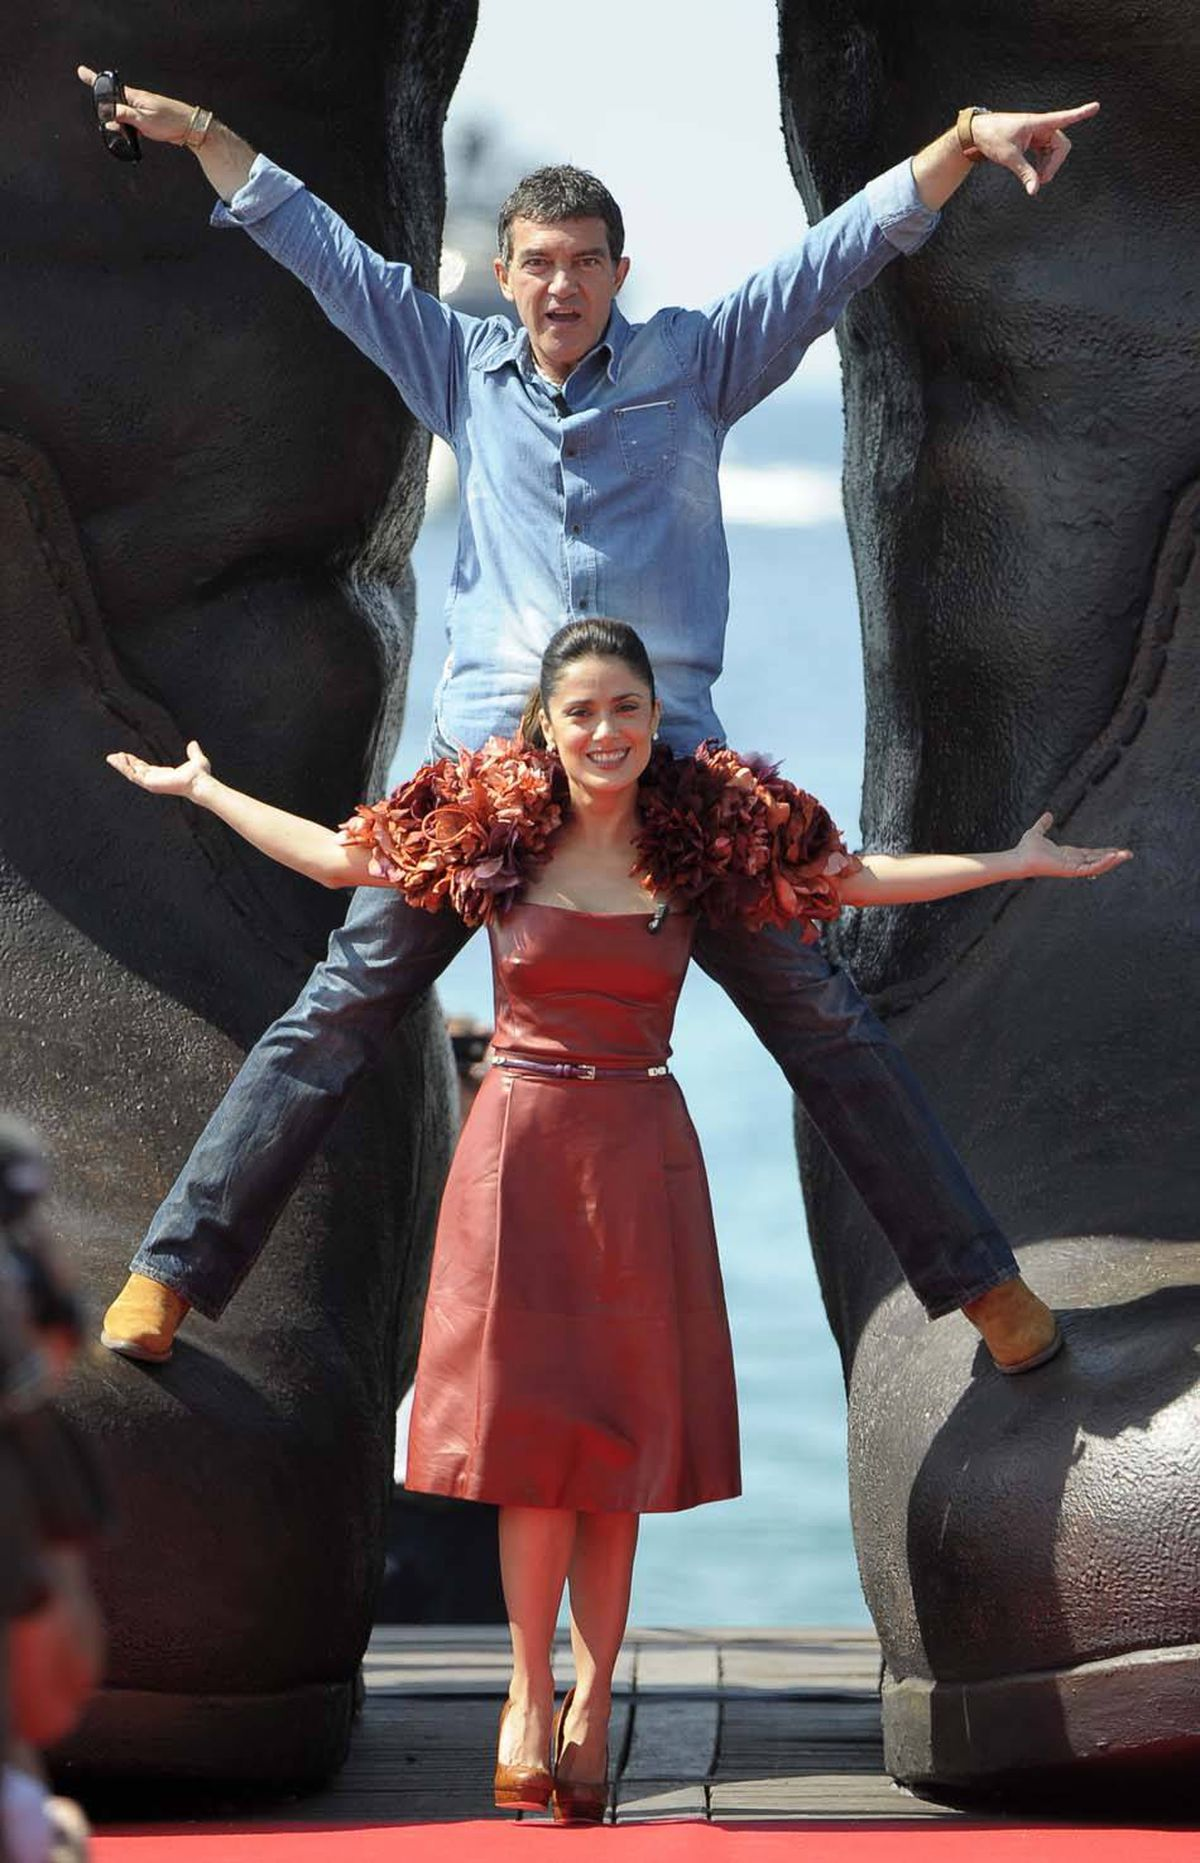 Spanish actor Antonio Banderas and Mexican actress Salma Hayek pose during the 'Puss in Boots' photocall at Carlton Beach during the 64th Cannes Film Festival on May 11, 2011 in Cannes. AFP PHOTO / FRED DUFOUR (Photo credit should read FRED DUFOUR/AFP/Getty Images)